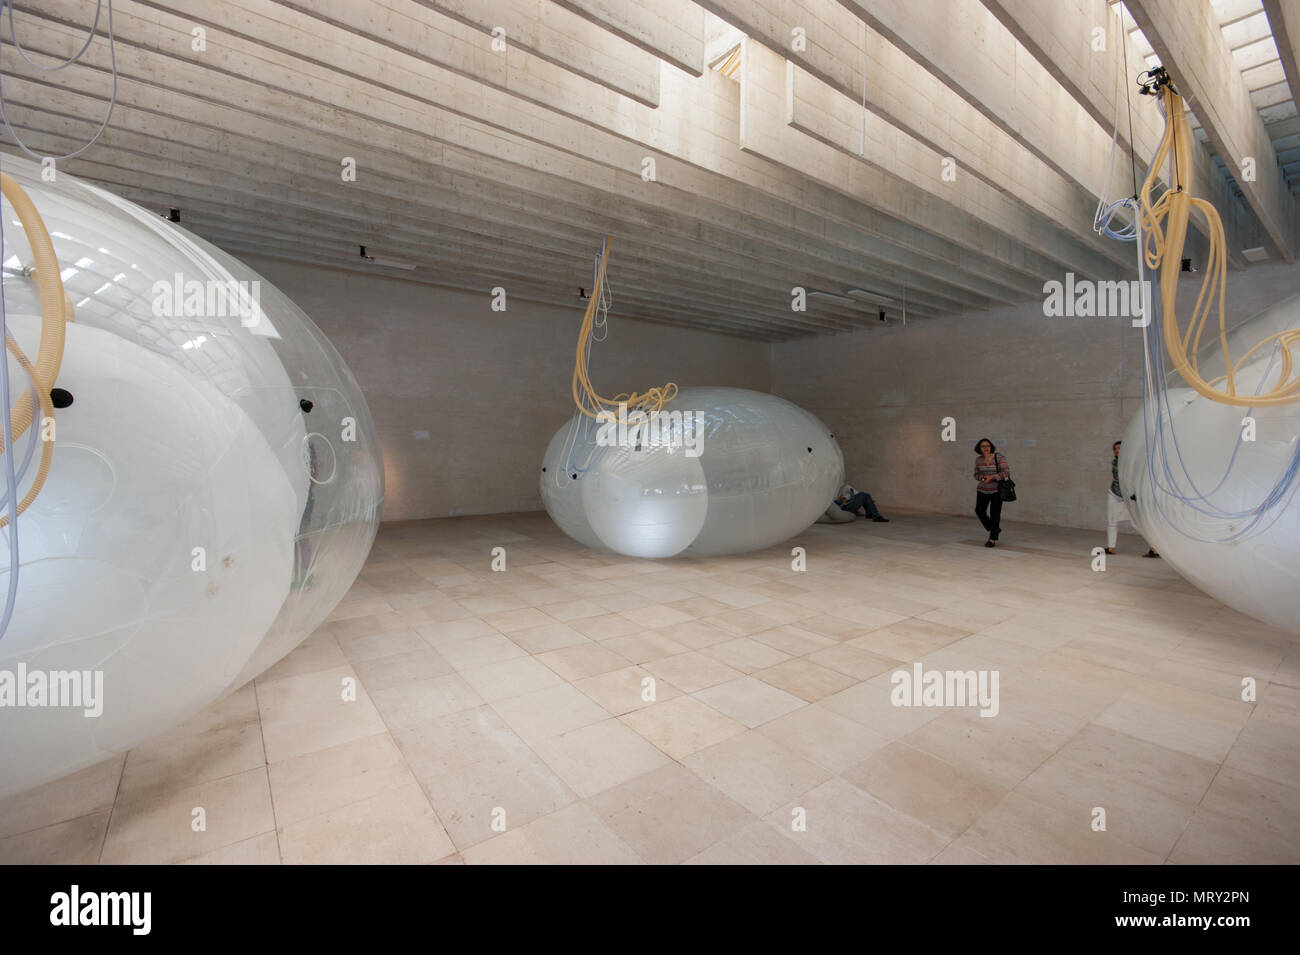 Another Generosity by by Norway 's Lunden Architecture Company, exhibition of the Nordic Countries pavilion at the 2018 Venice Architecture Biennale - Stock Image